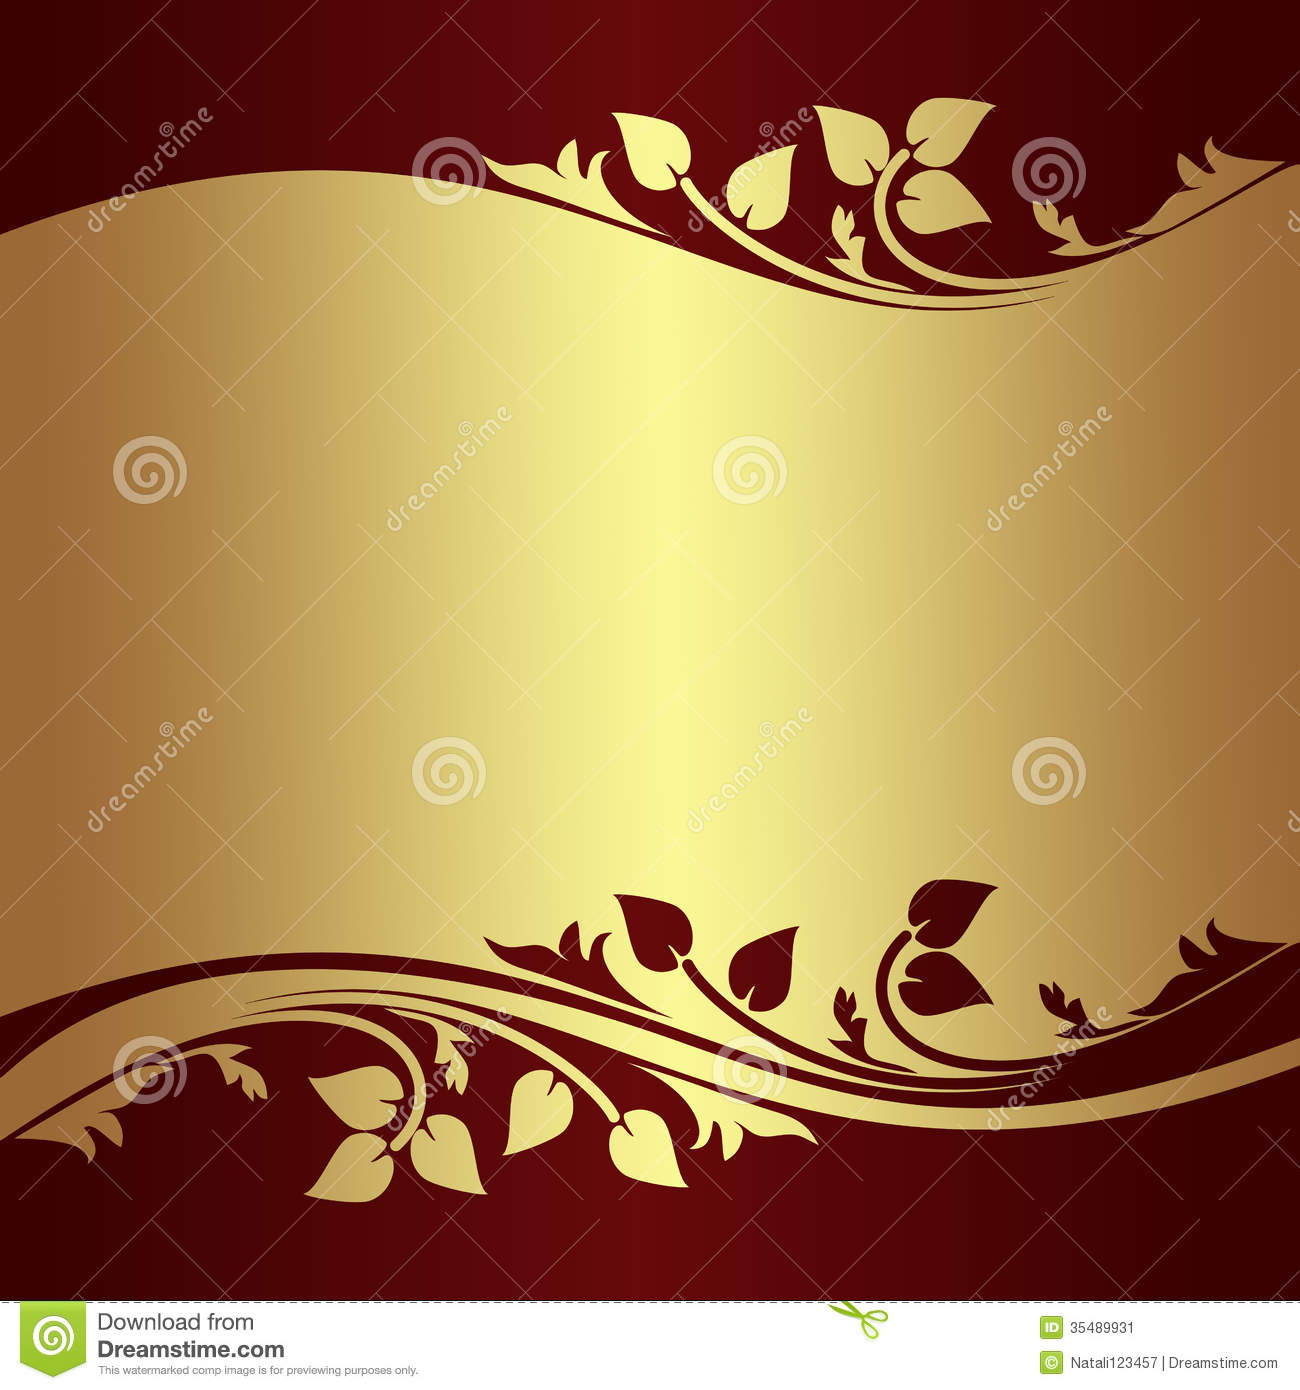 Old Paper Wallpaper Hd Luxury Golden Background Witth Floral Borders Stock Image